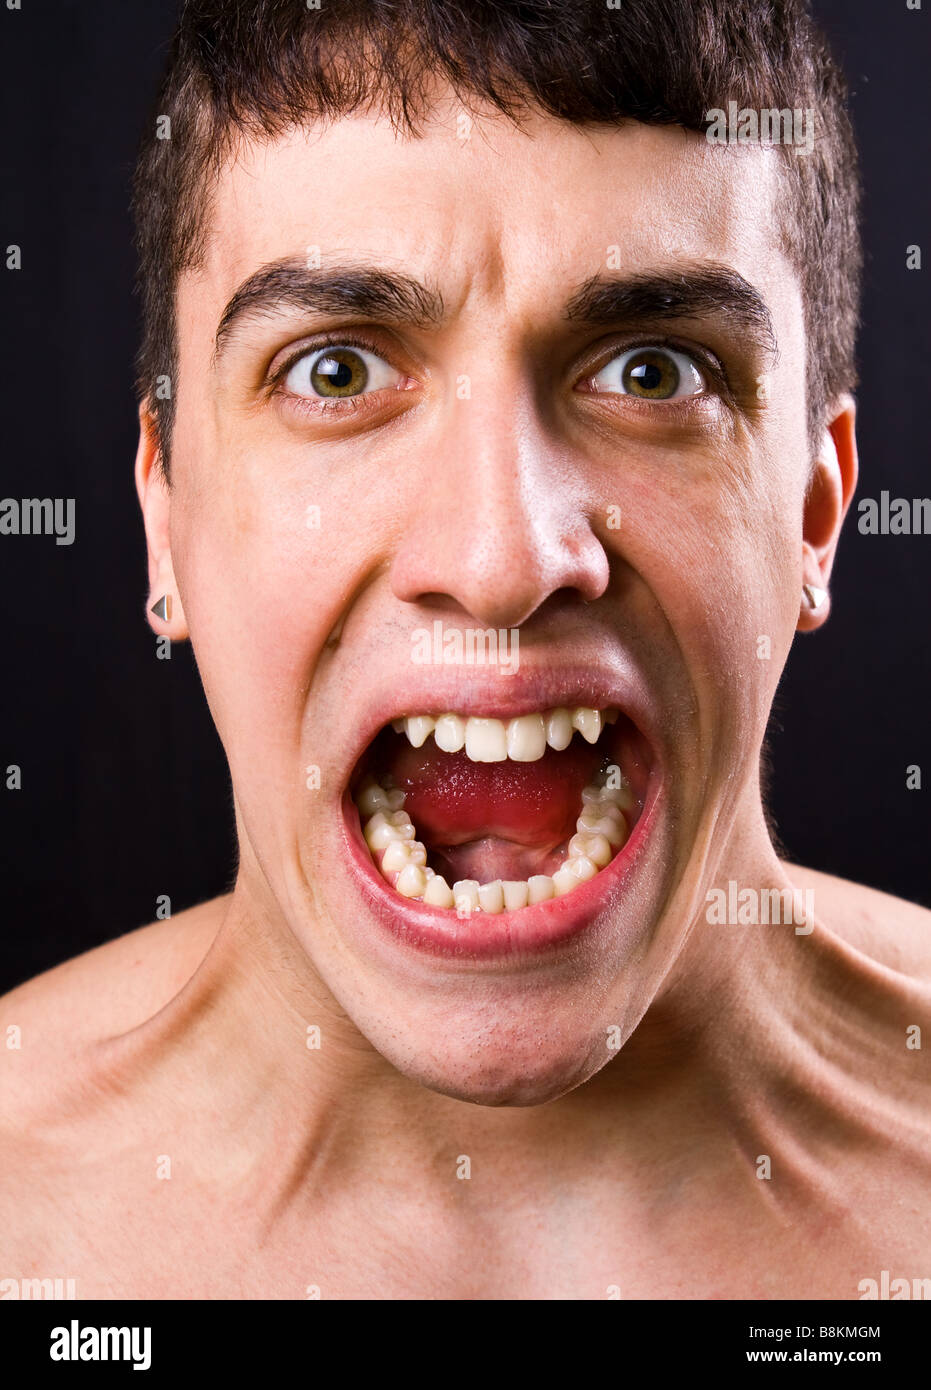 Scream of shocked and scared young man Stock Photo